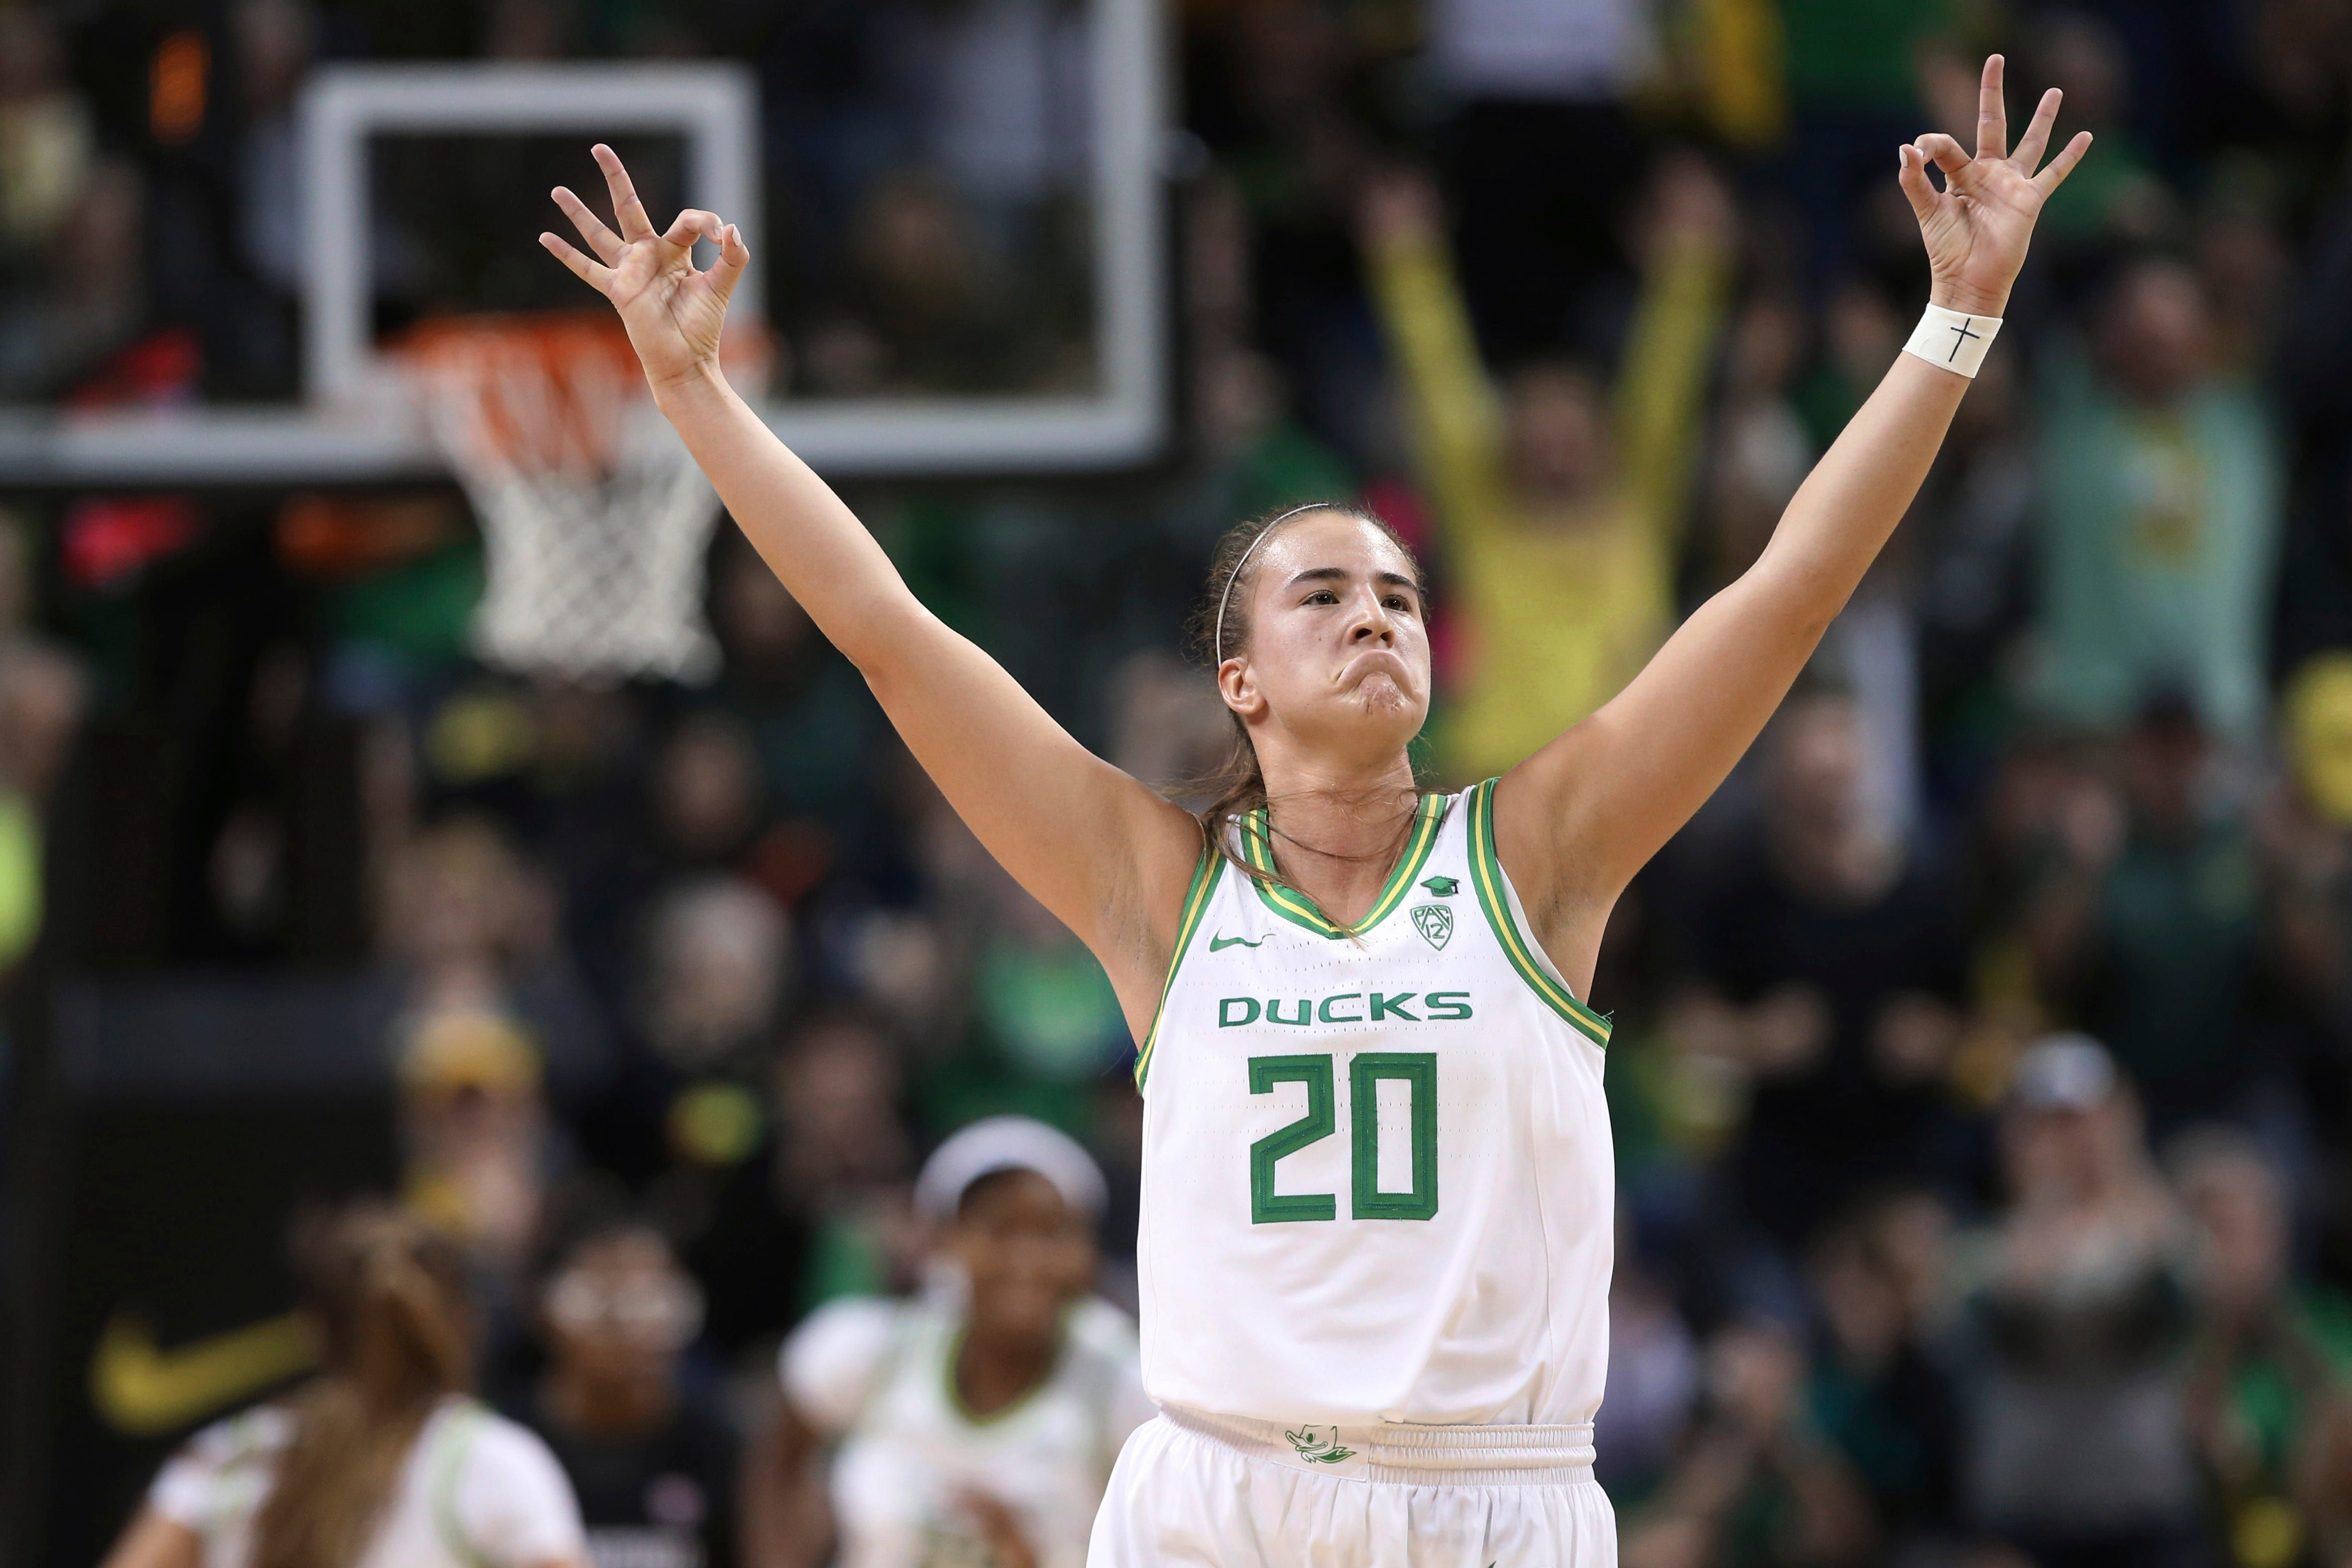 New York Liberty select Sabrina Ionescu with No. 1 pick in